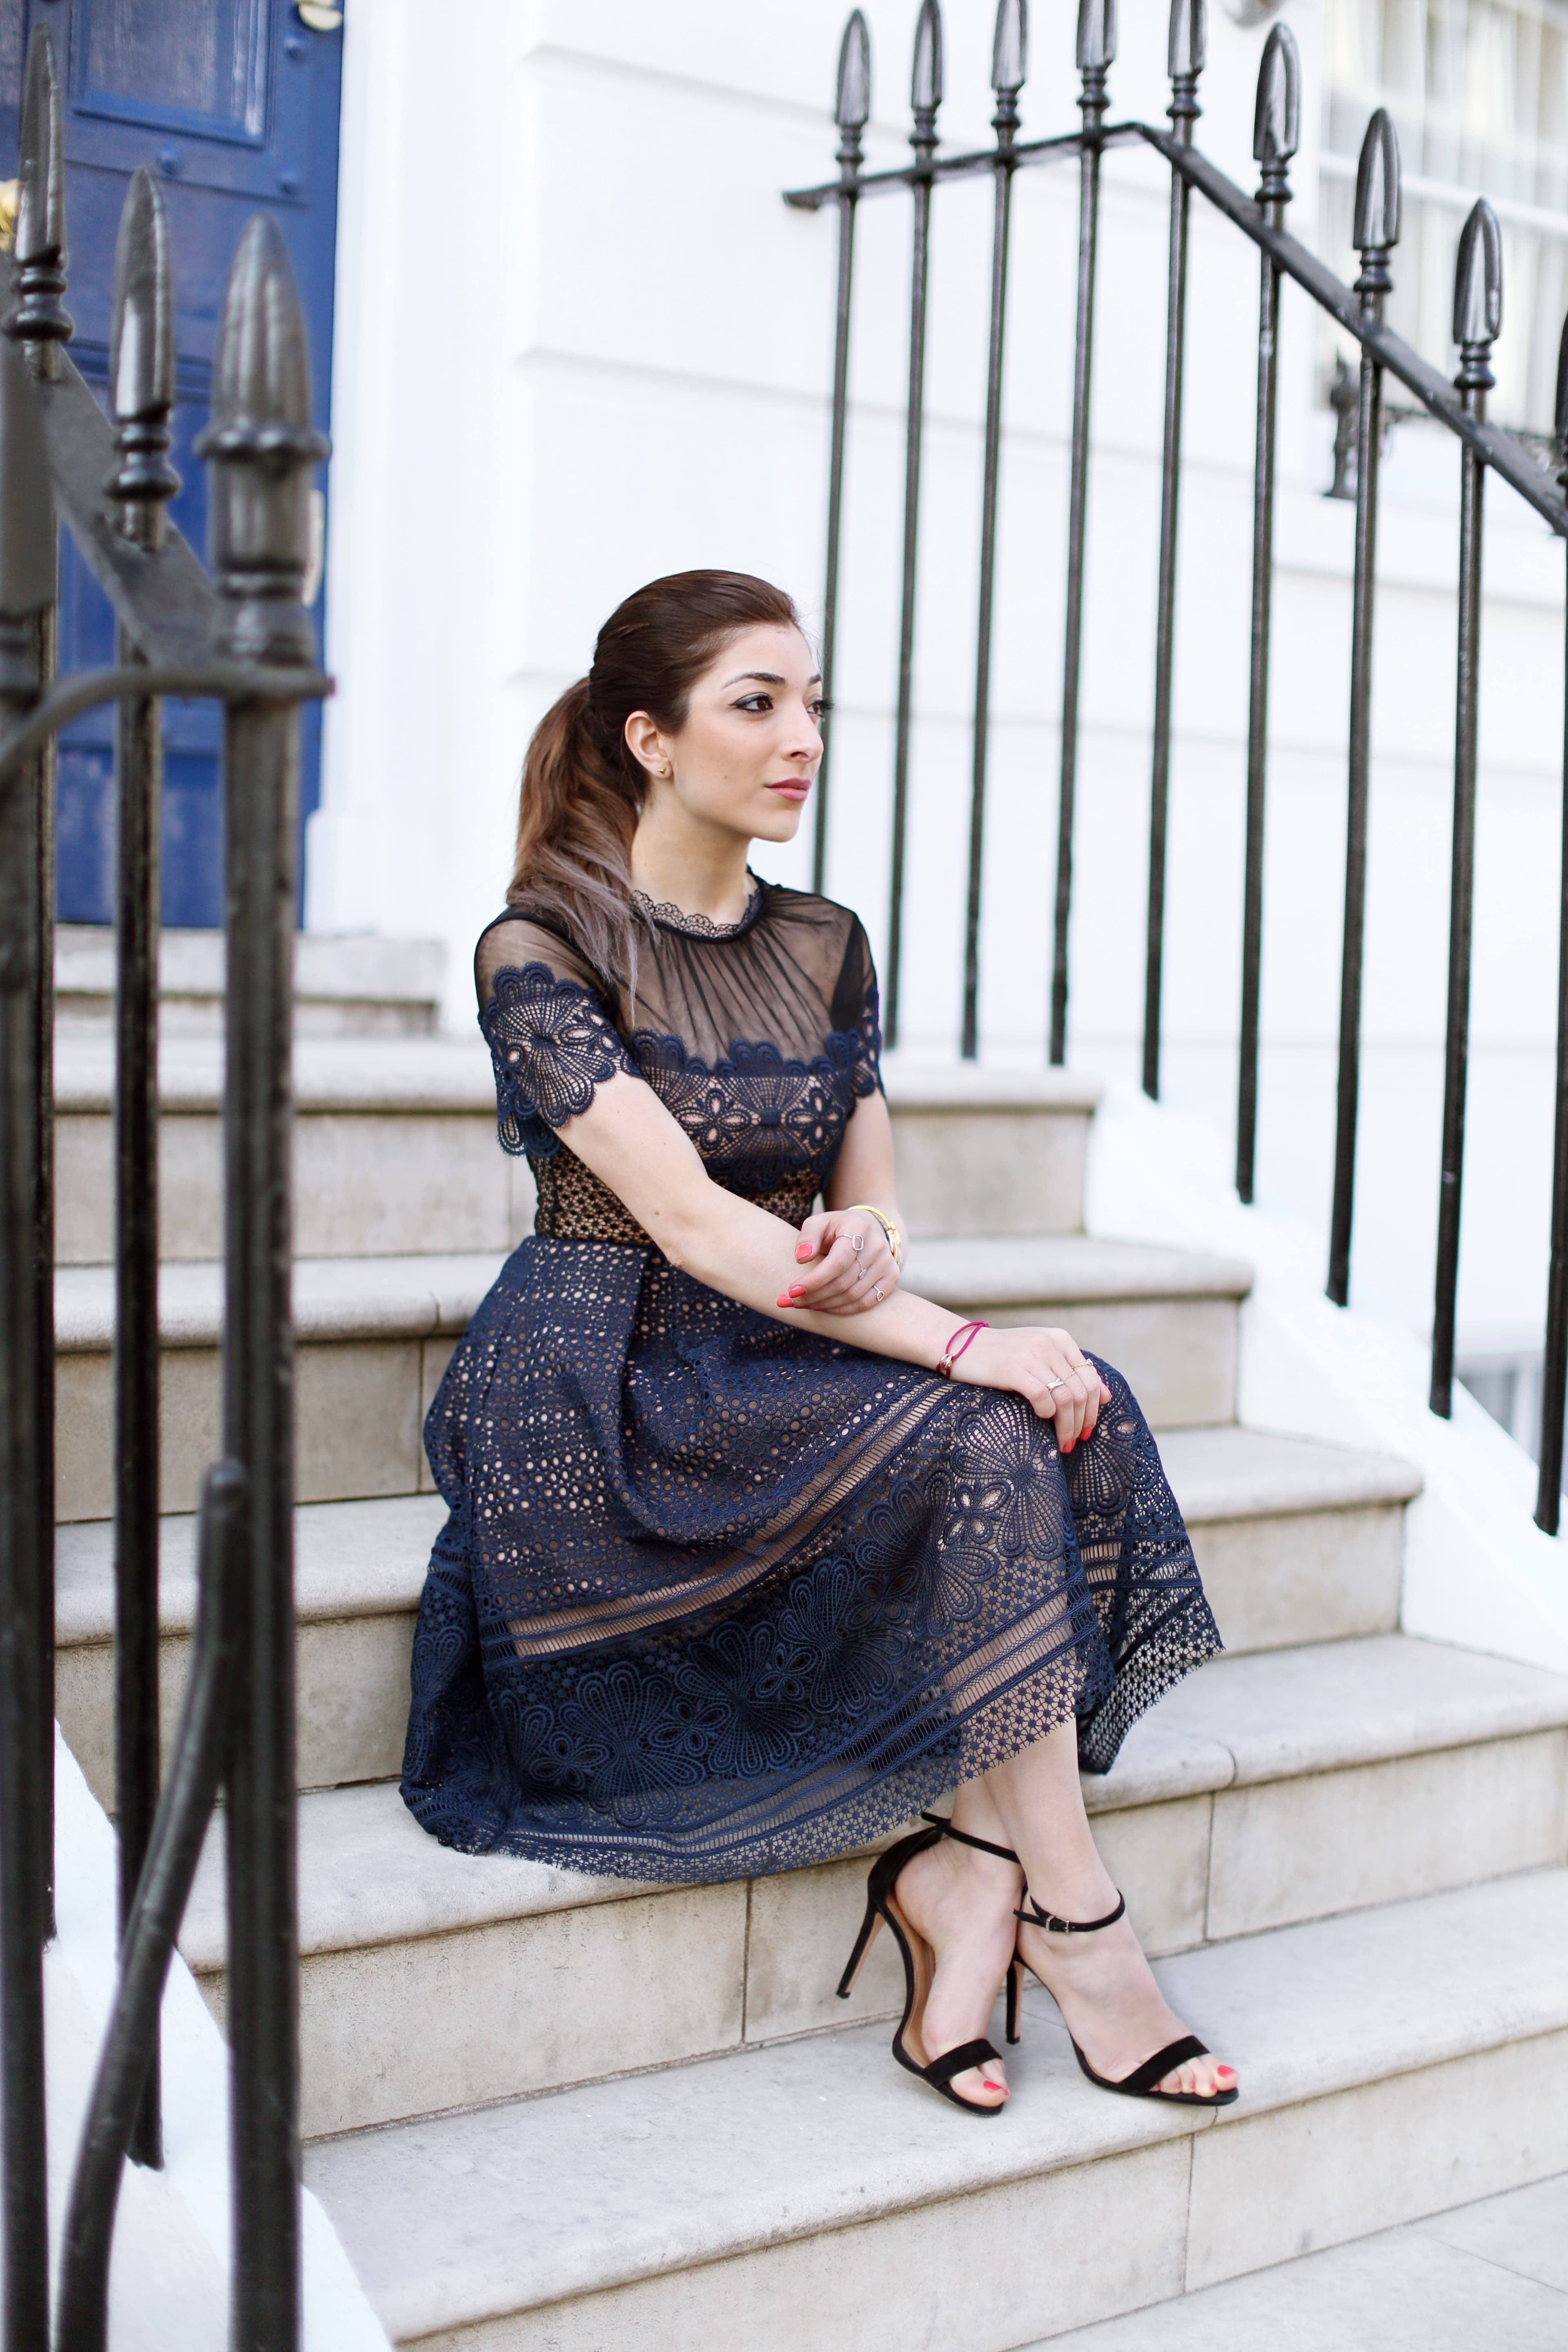 Lace dress styles for funeral  Pin by Meghan Bezzina on Style Meghan  Pinterest  Ear jacket